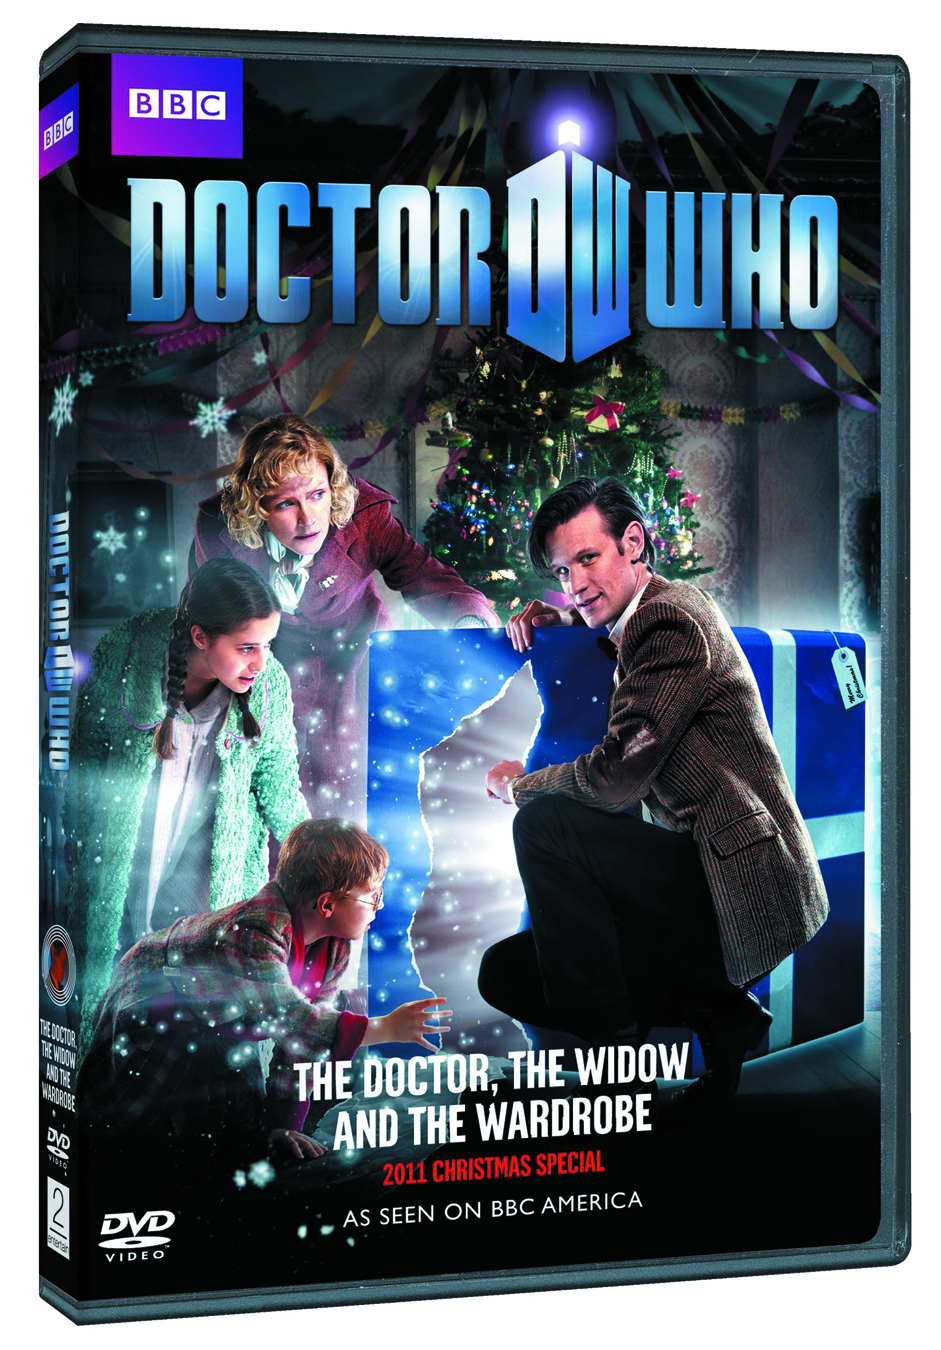 DOCTOR WHO DOCTOR WIDOW & THE WARDROBE DVD